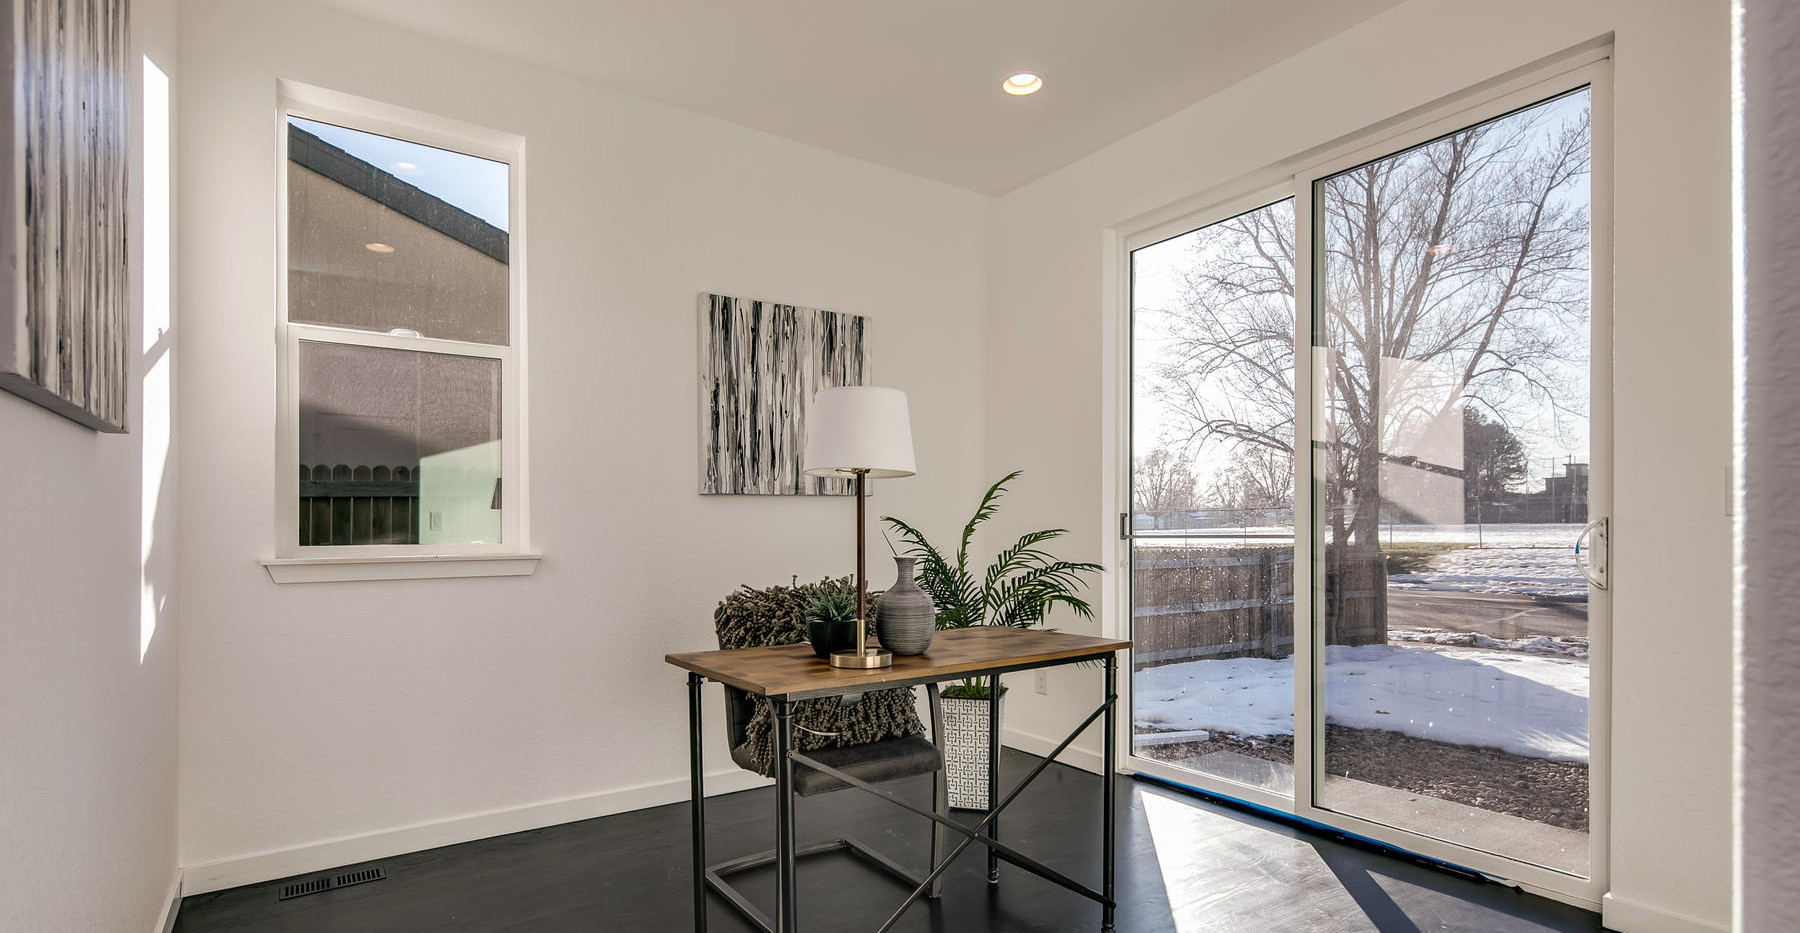 4052 LIPAN ST NEW BUILD, LISTED BY DEVIREE VALLEJO